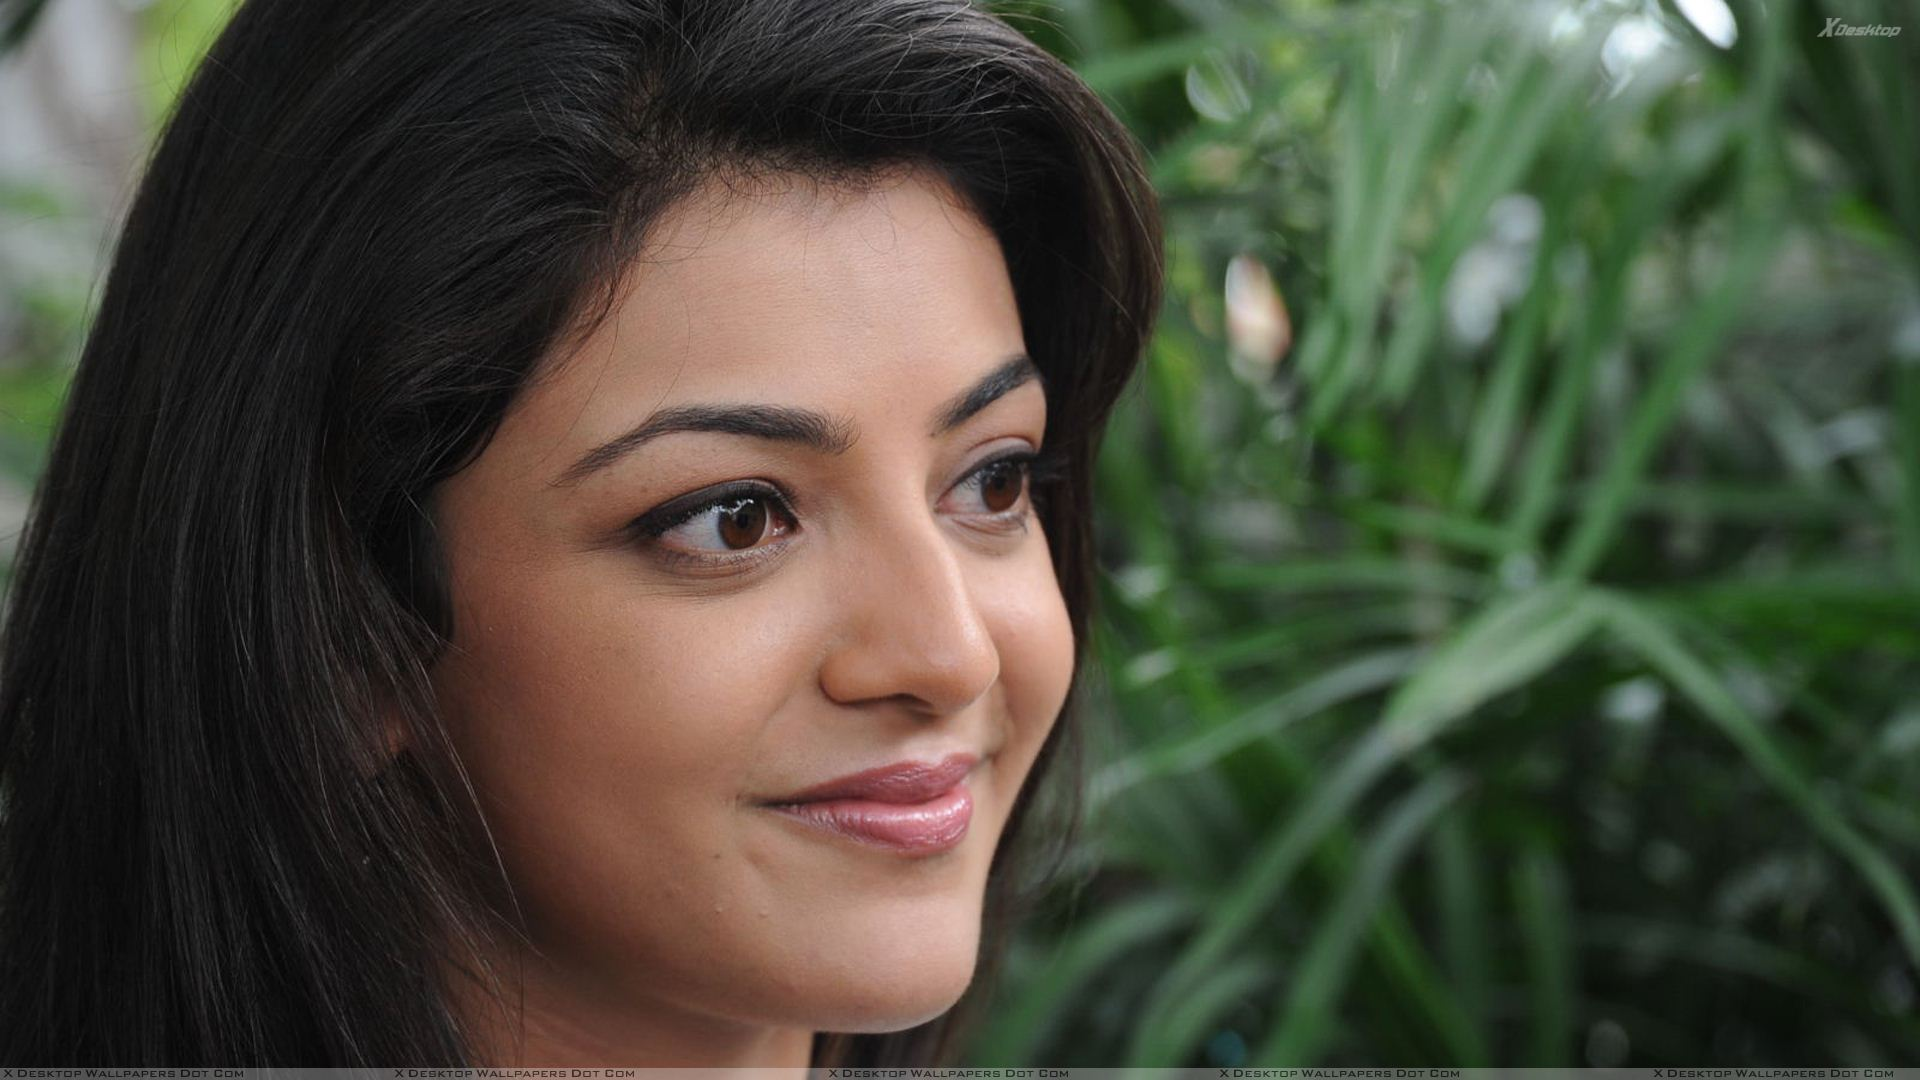 kajal aggarwal pink lips cute face closeup wallpaper